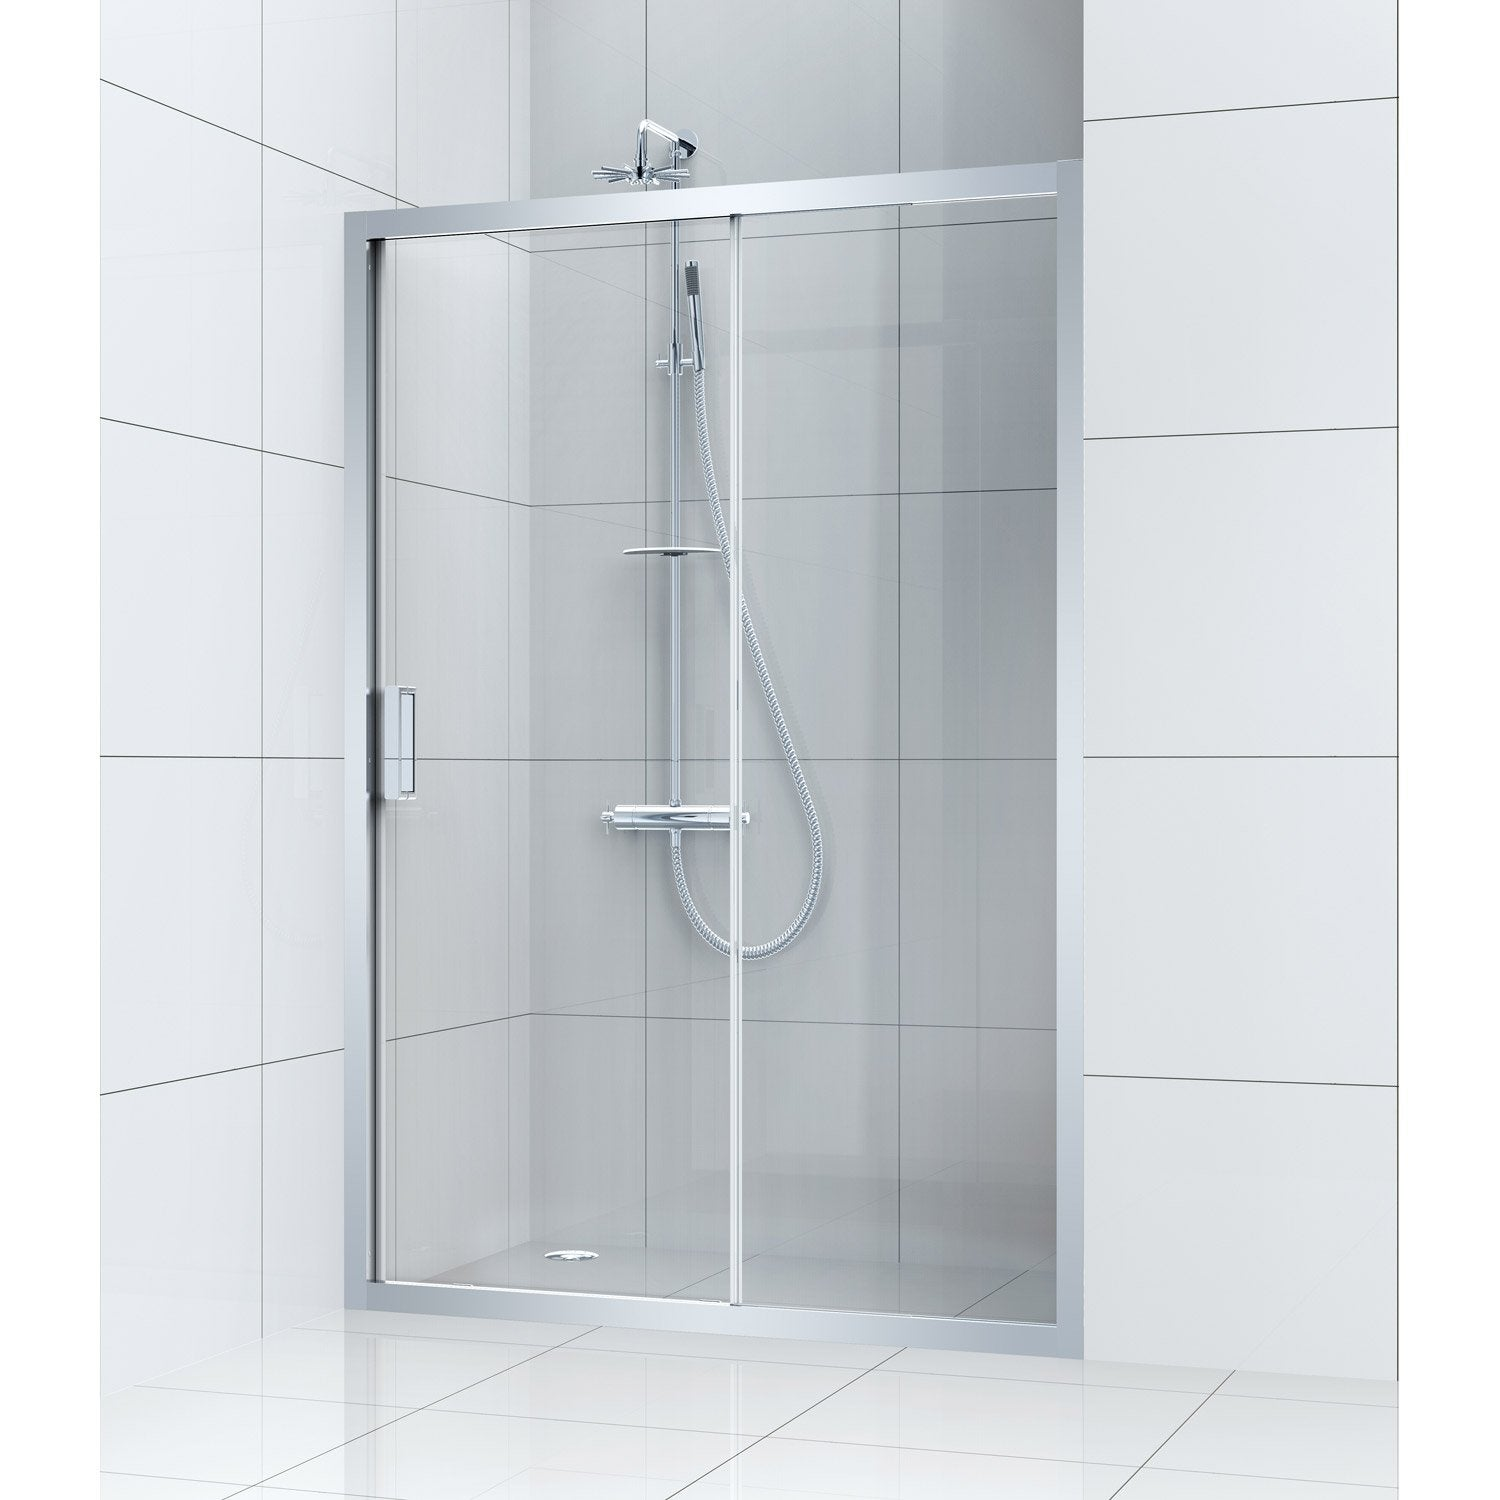 Porte de douche coulissante 140 cm transparent charm for Porte coulissante 140 cm